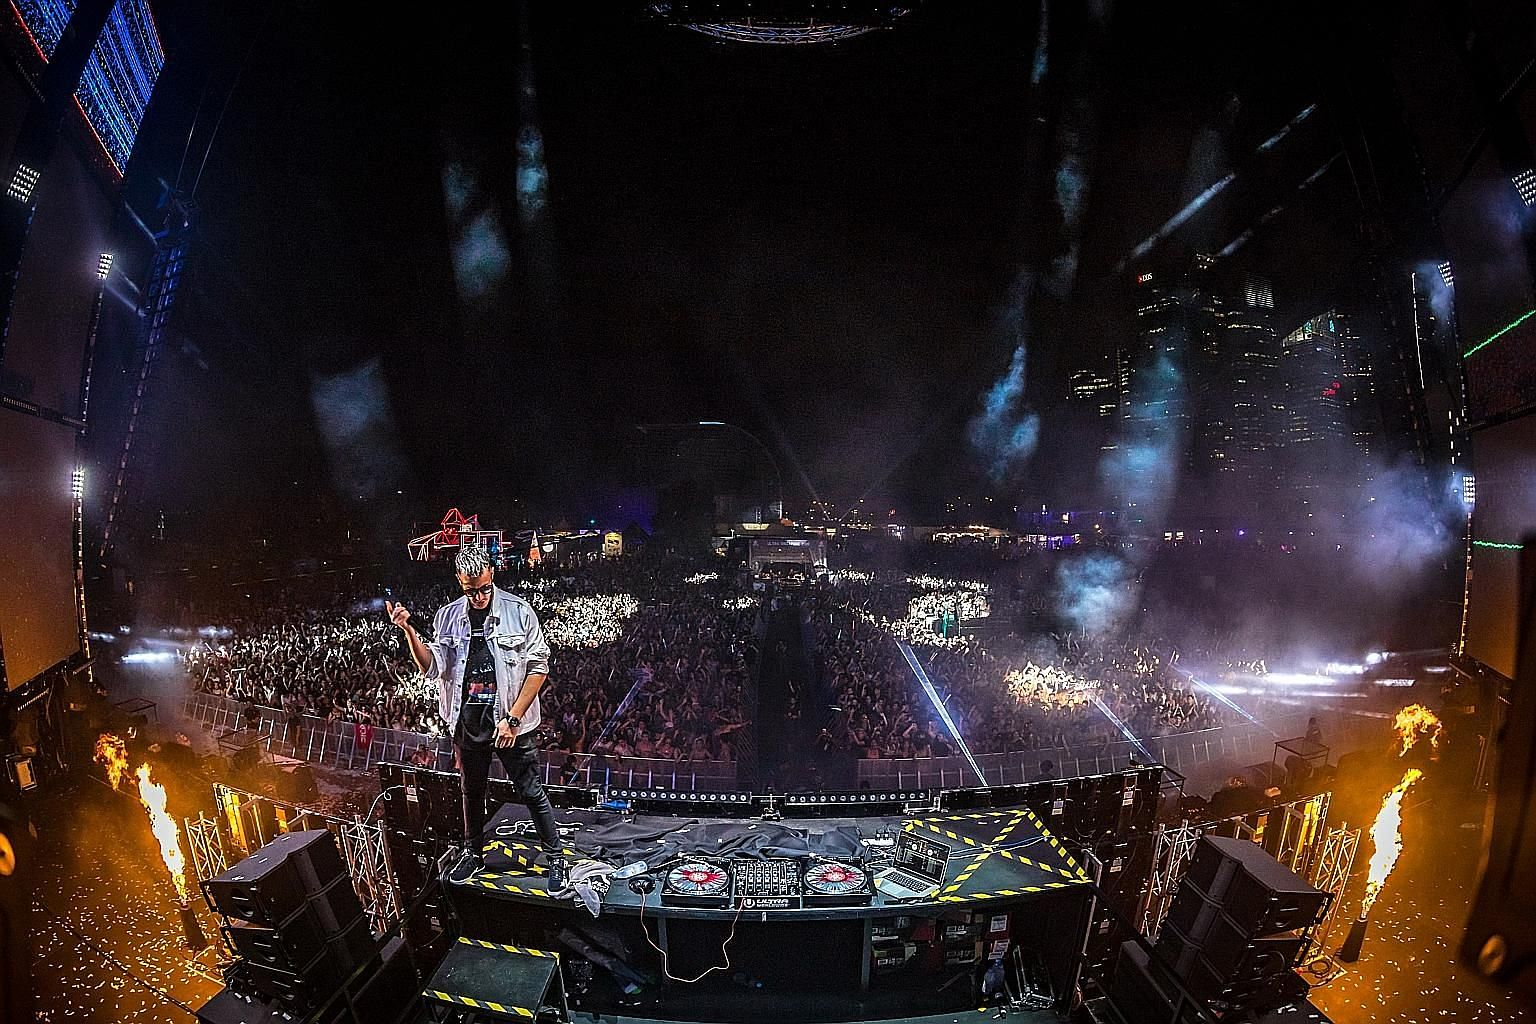 Last year's Ultra Singapore was held at the open field next to Marina Bay Sands Tower 1.